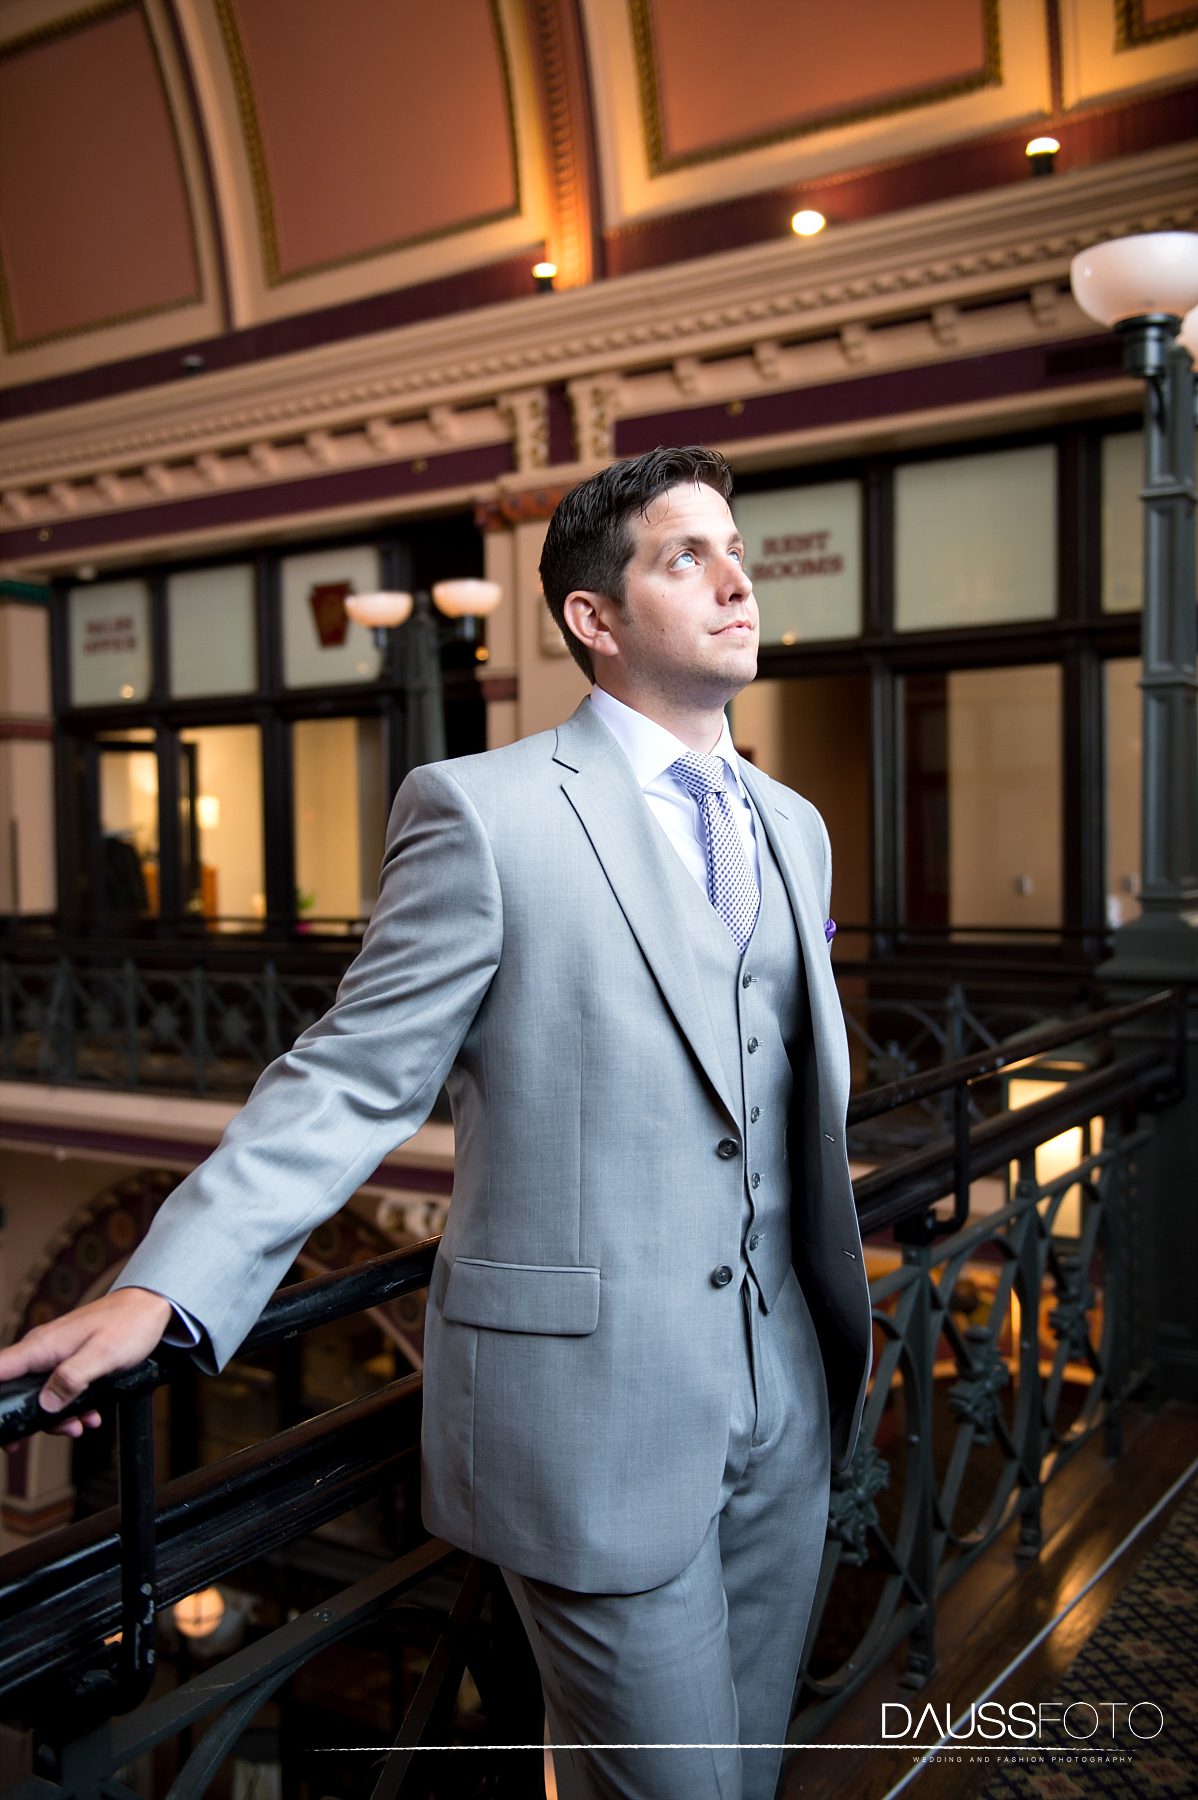 DaussFOTO_20160625_0079_Indiana Wedding Photographer_Crowne Plaza at Historic Union Station.jpg